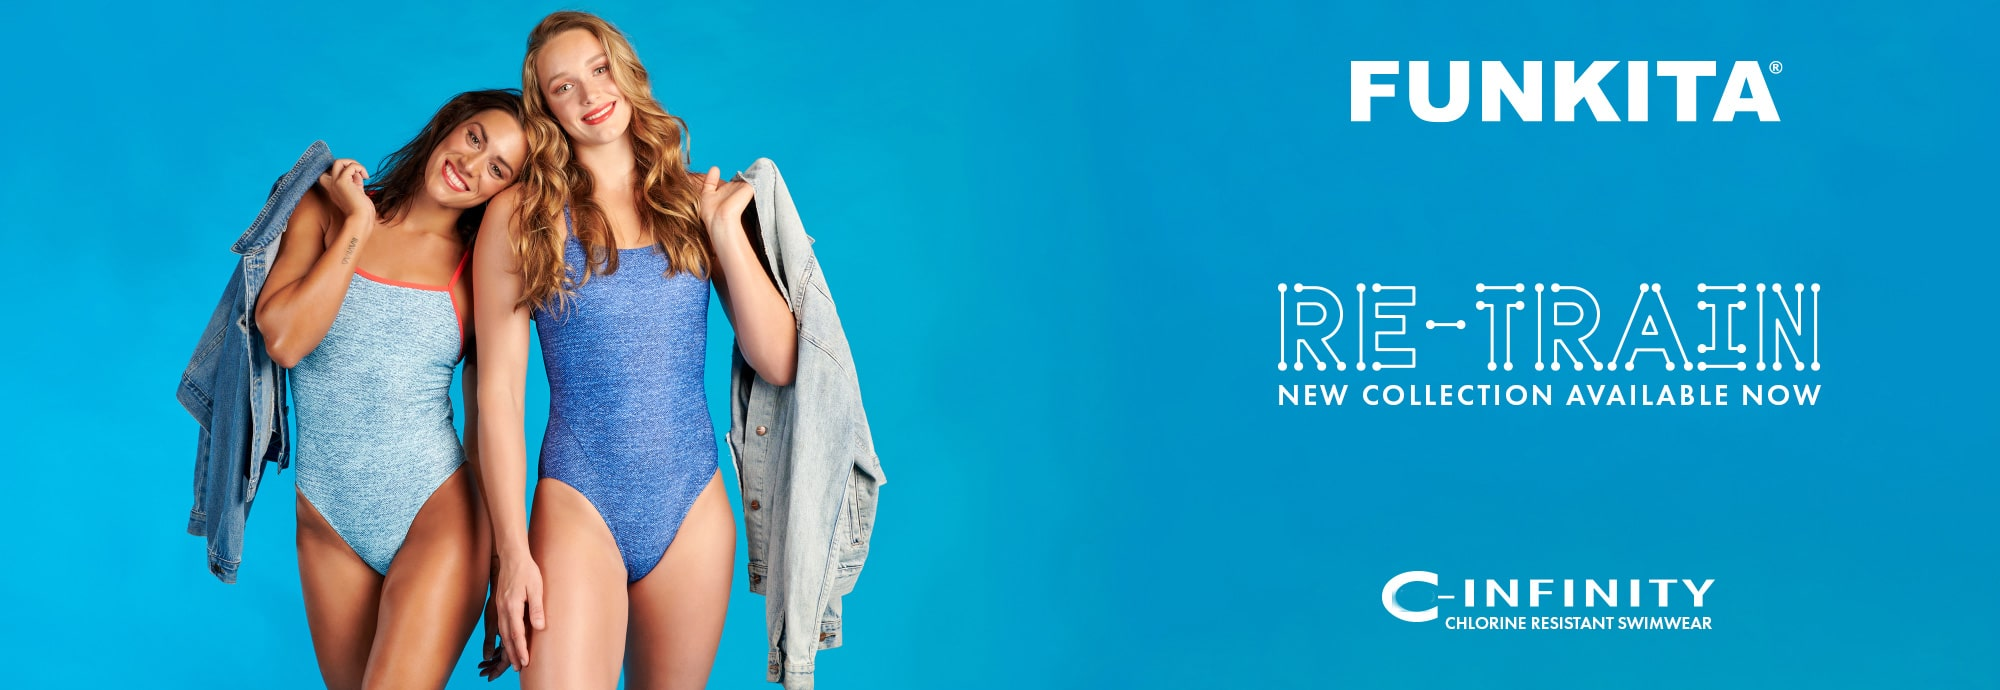 Funkita Re-Train - New Collection Now Available